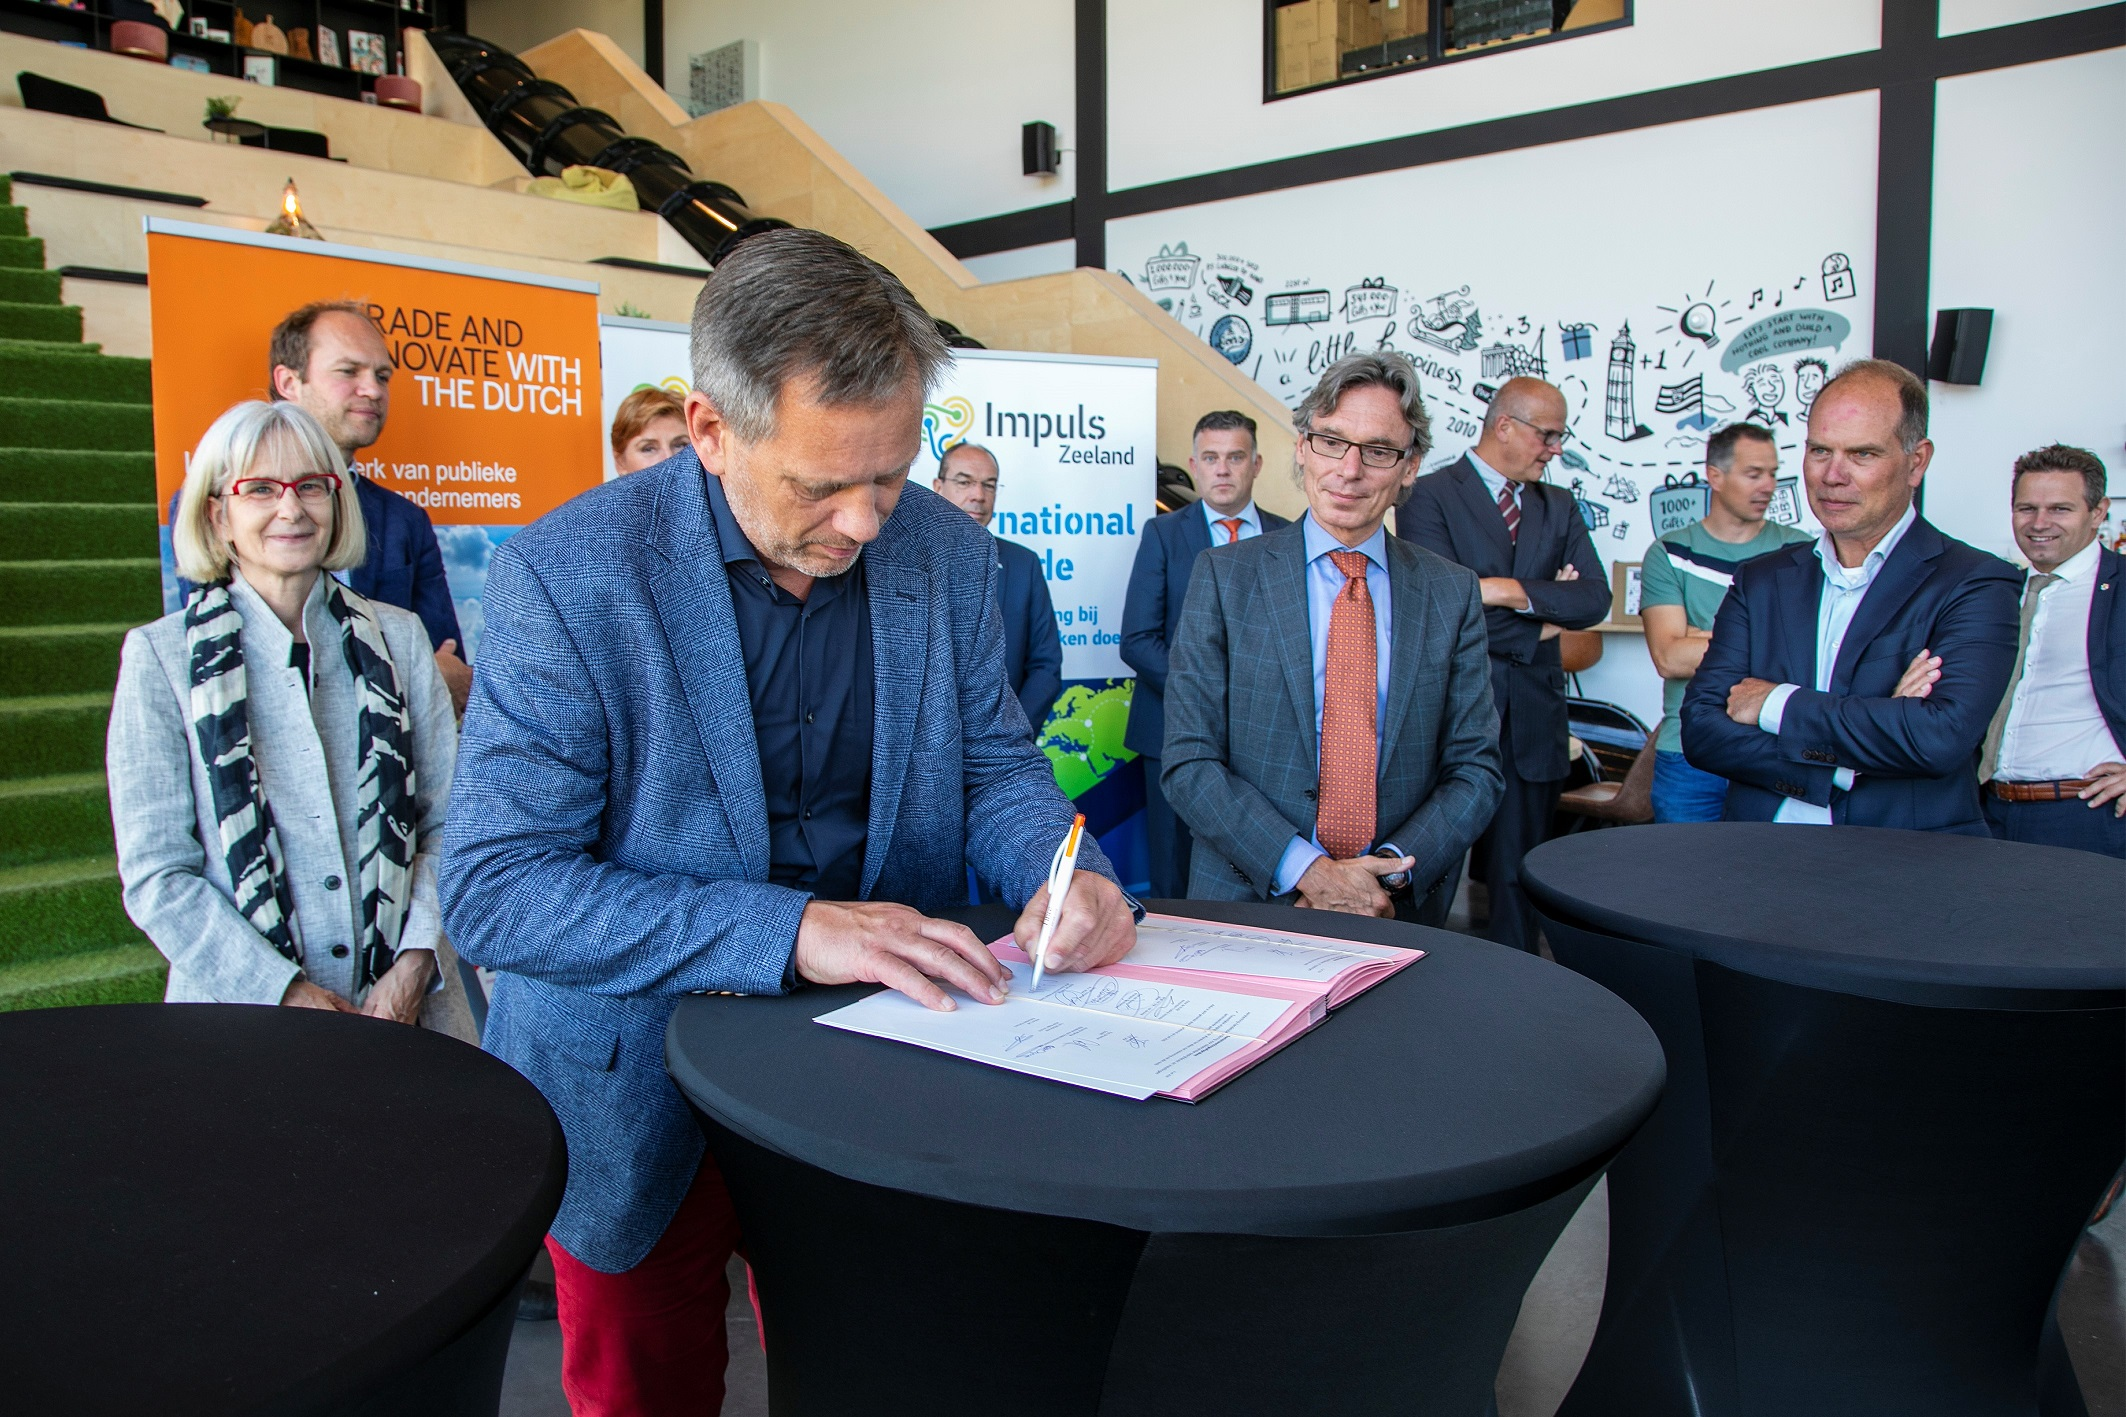 Ondertekening20convenant20Impuls20 20Trade20and20Innovate20NL20persbericht